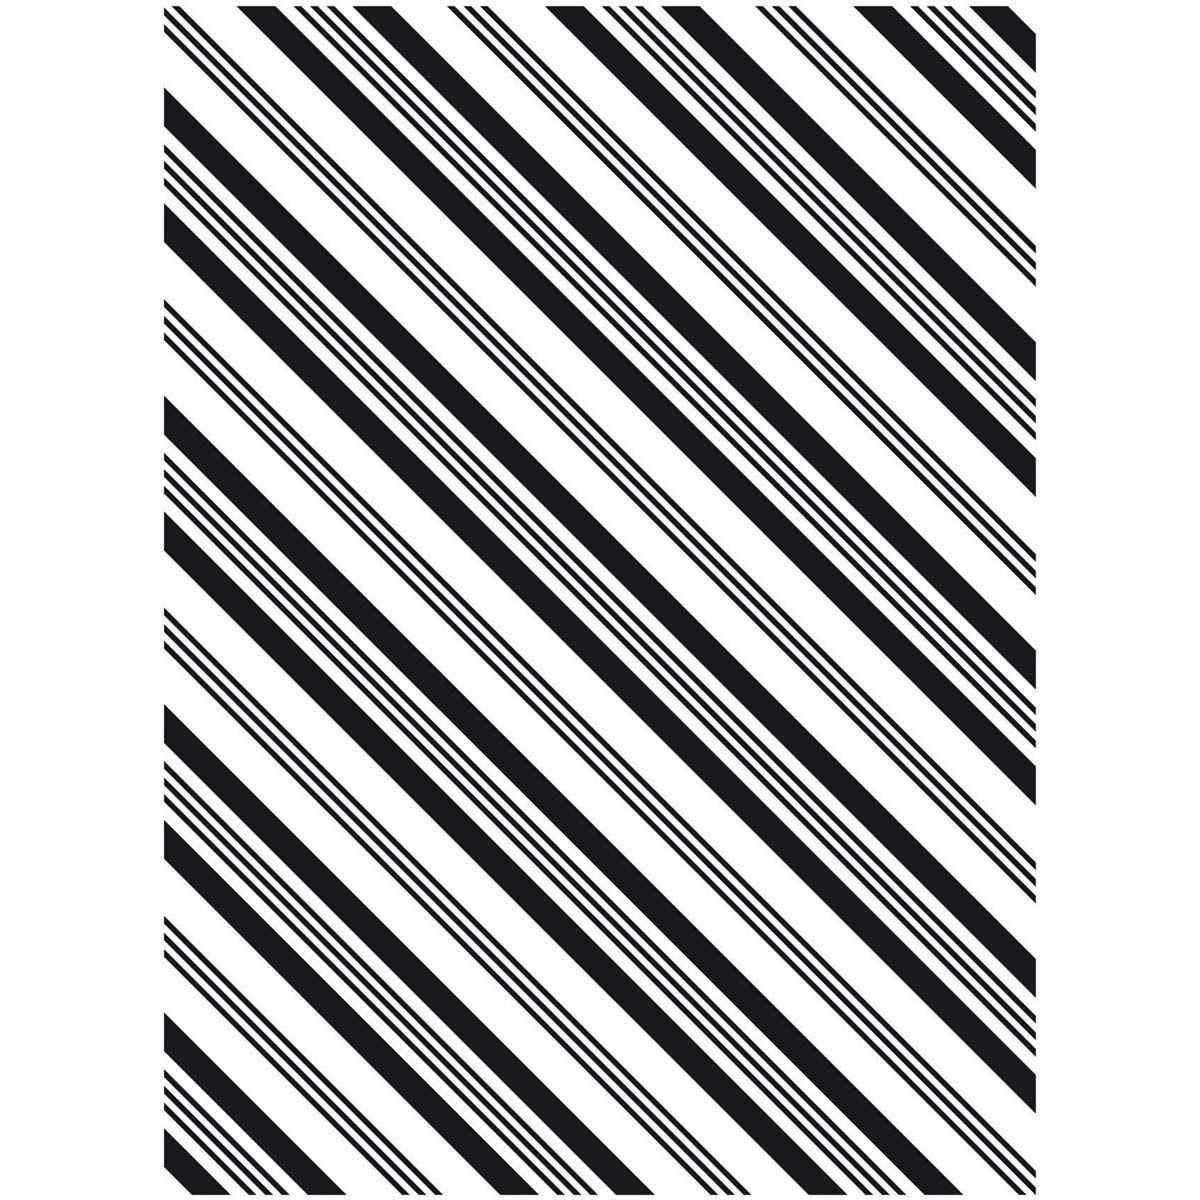 Darice Embossing Folder Stripe Background 4.25 X 5.75 Inches (12 Pack)